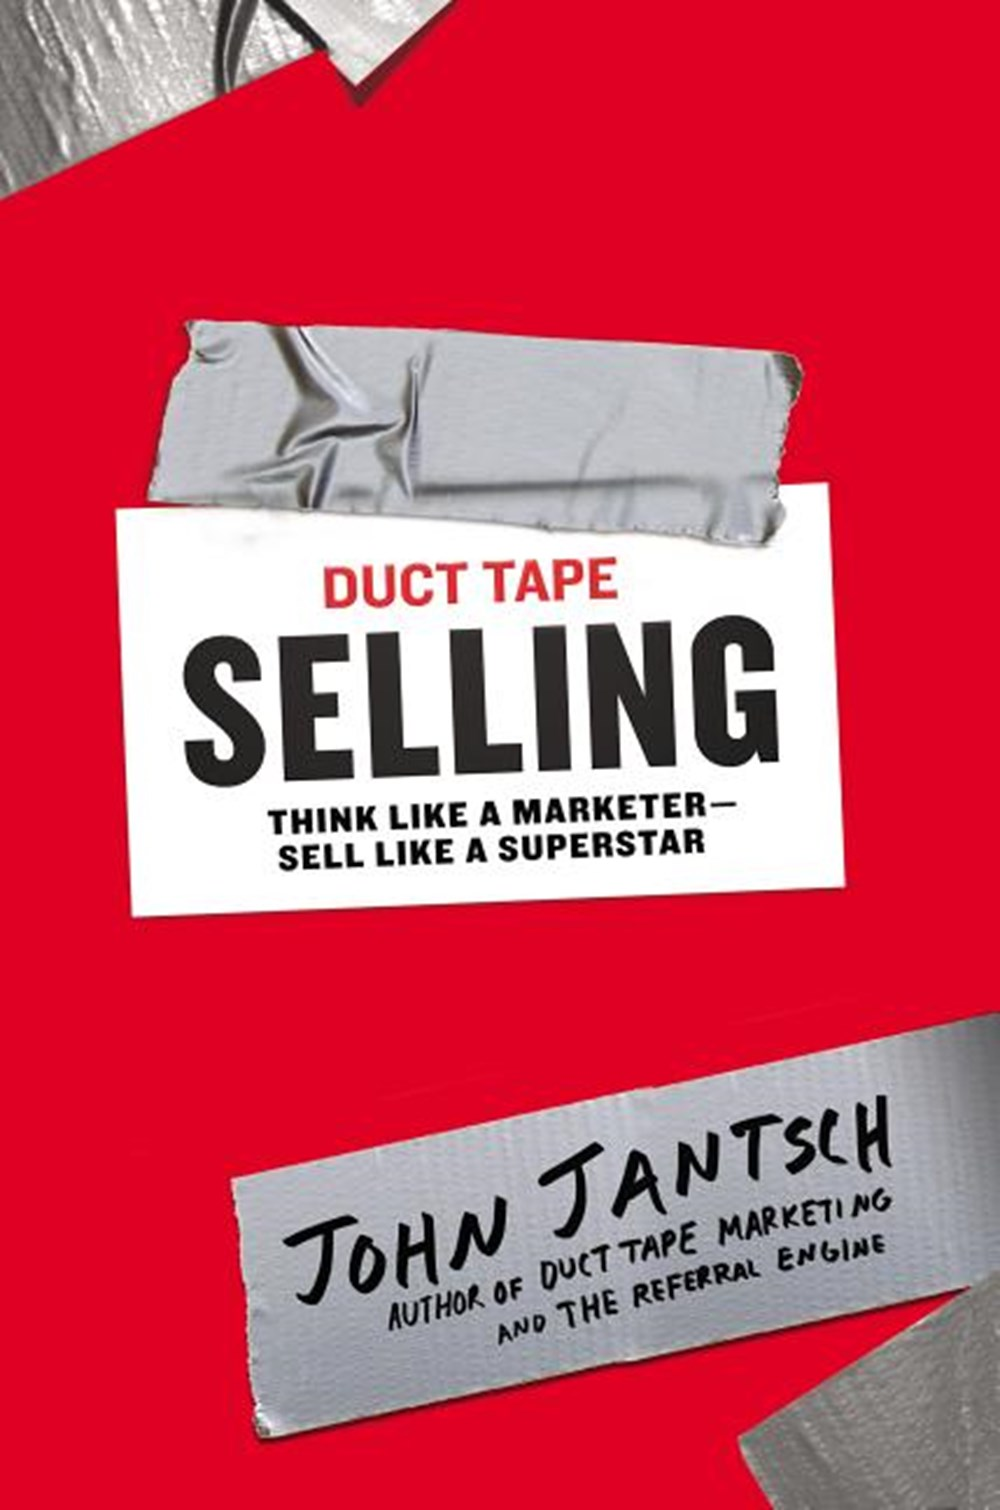 Duct Tape Selling Think Like a Marketer-Sell Like a Superstar